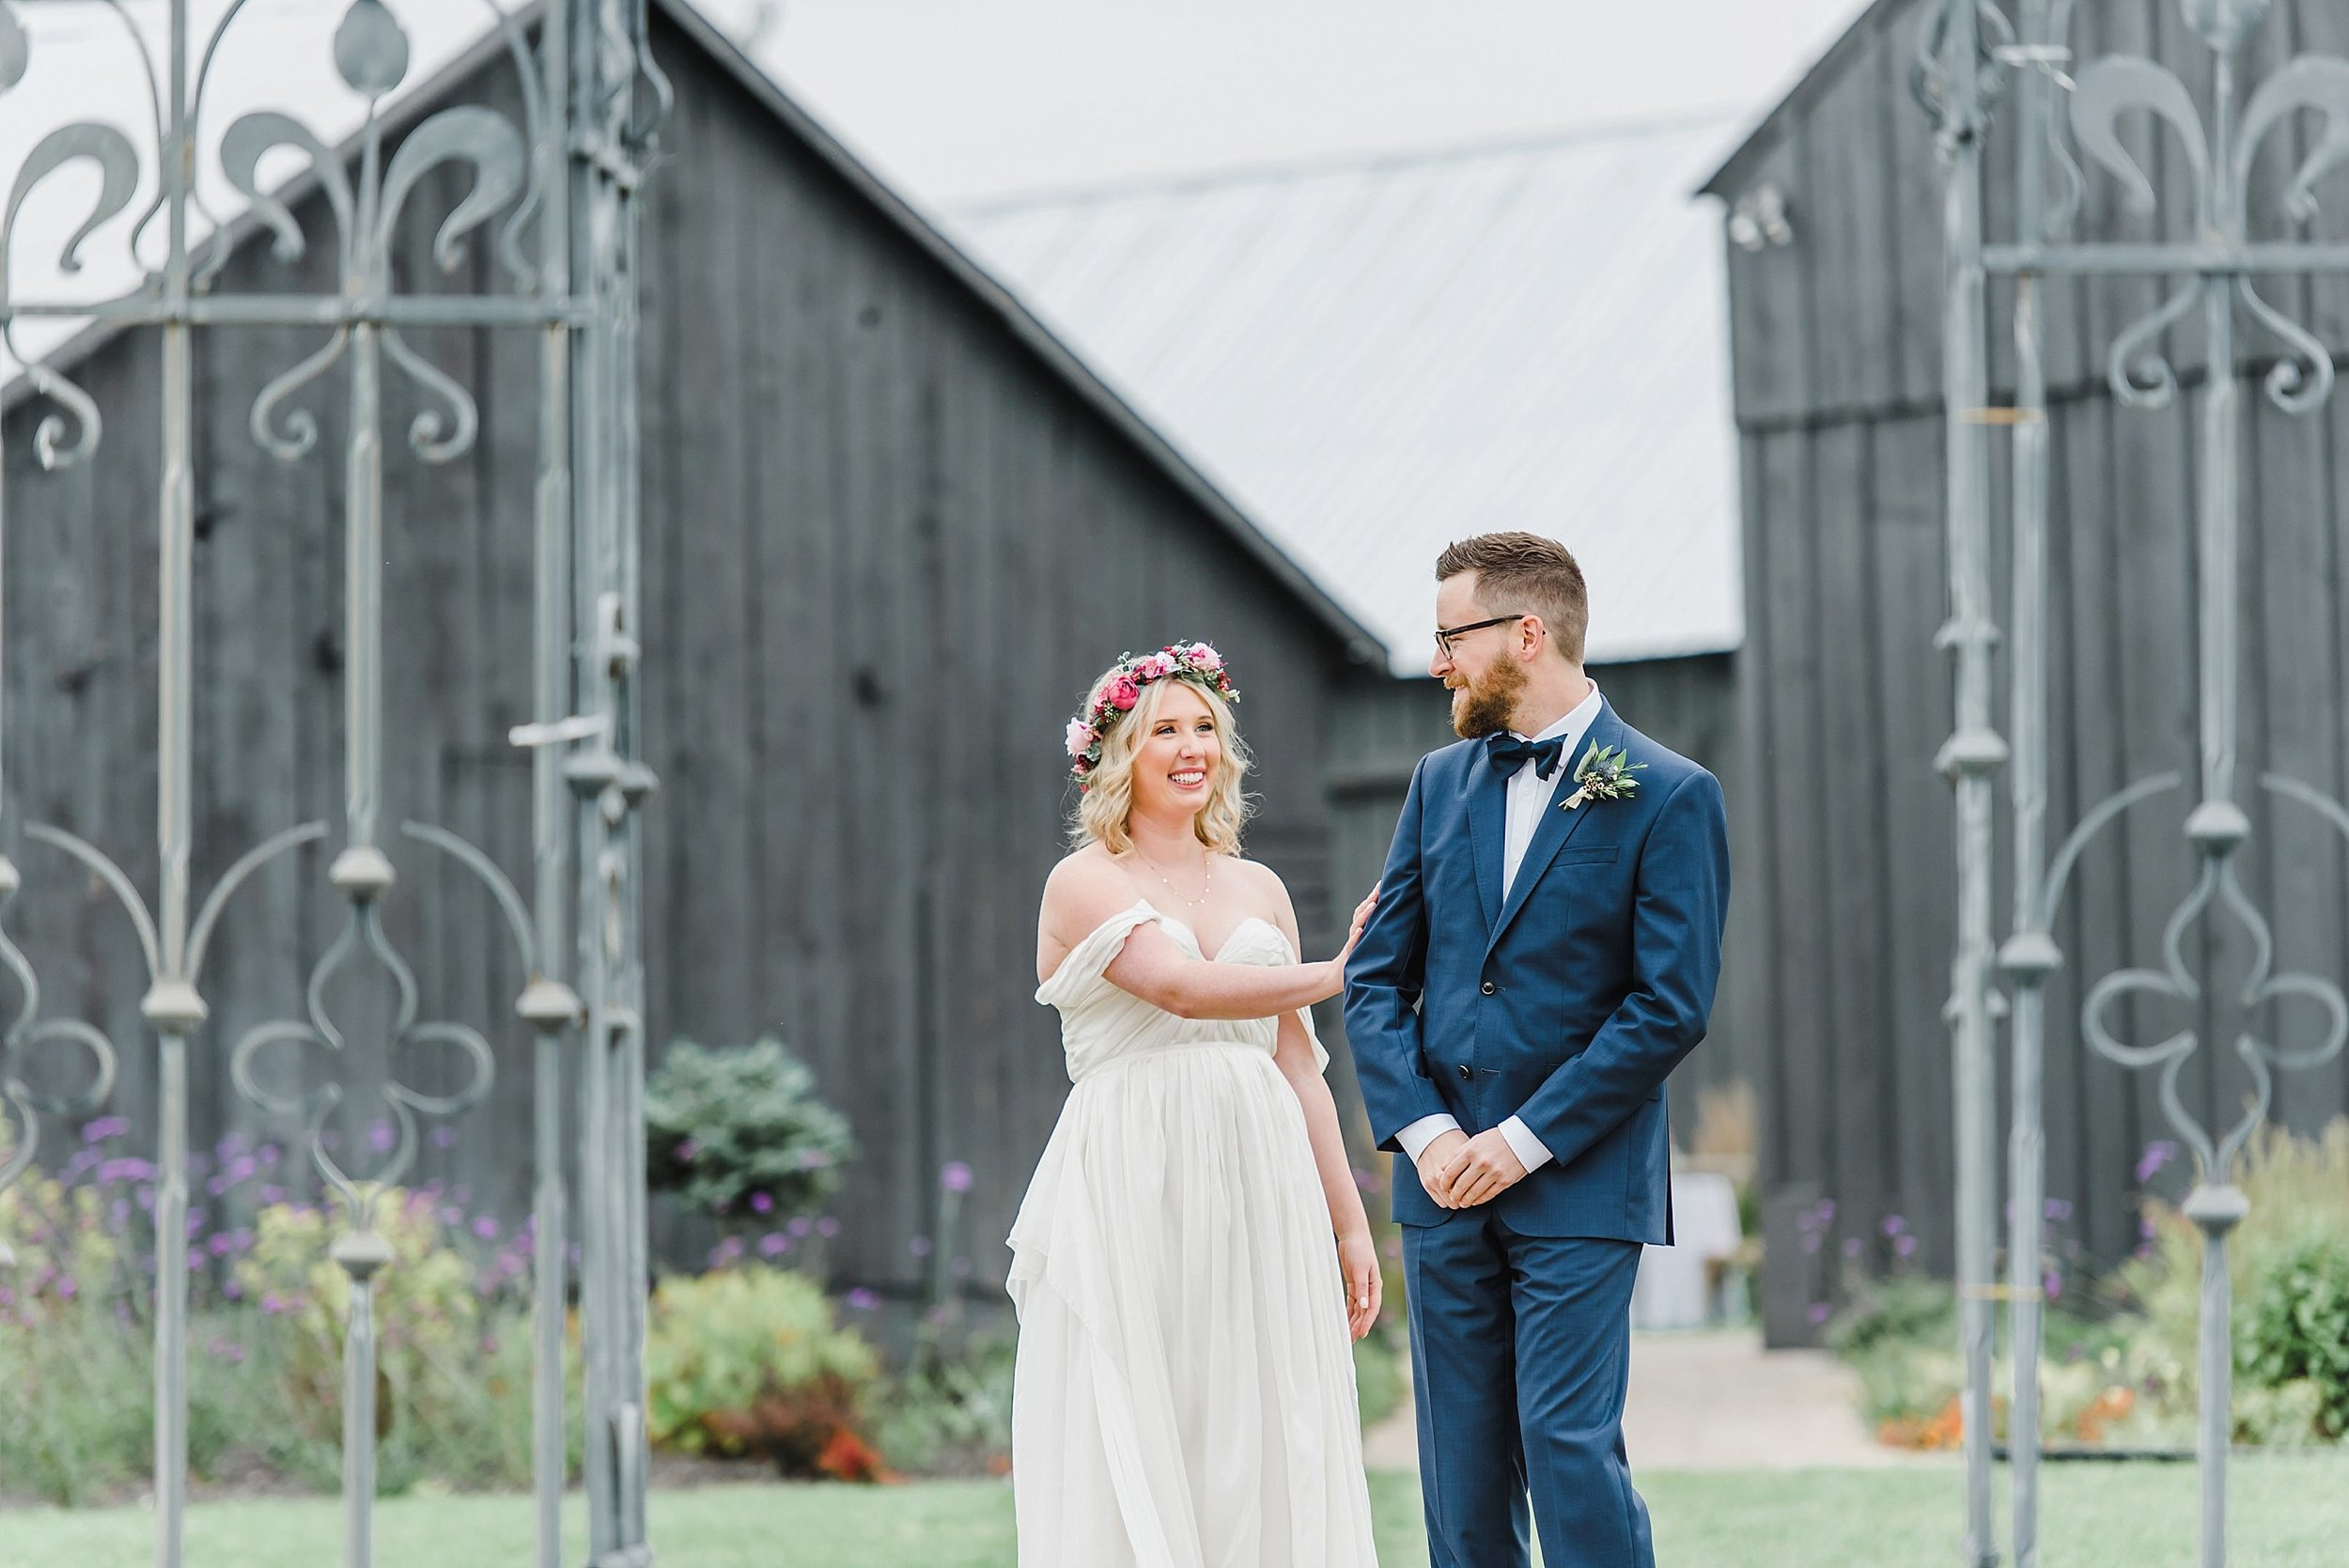 light airy indie fine art ottawa wedding photographer | Ali and Batoul Photography_0770.jpg